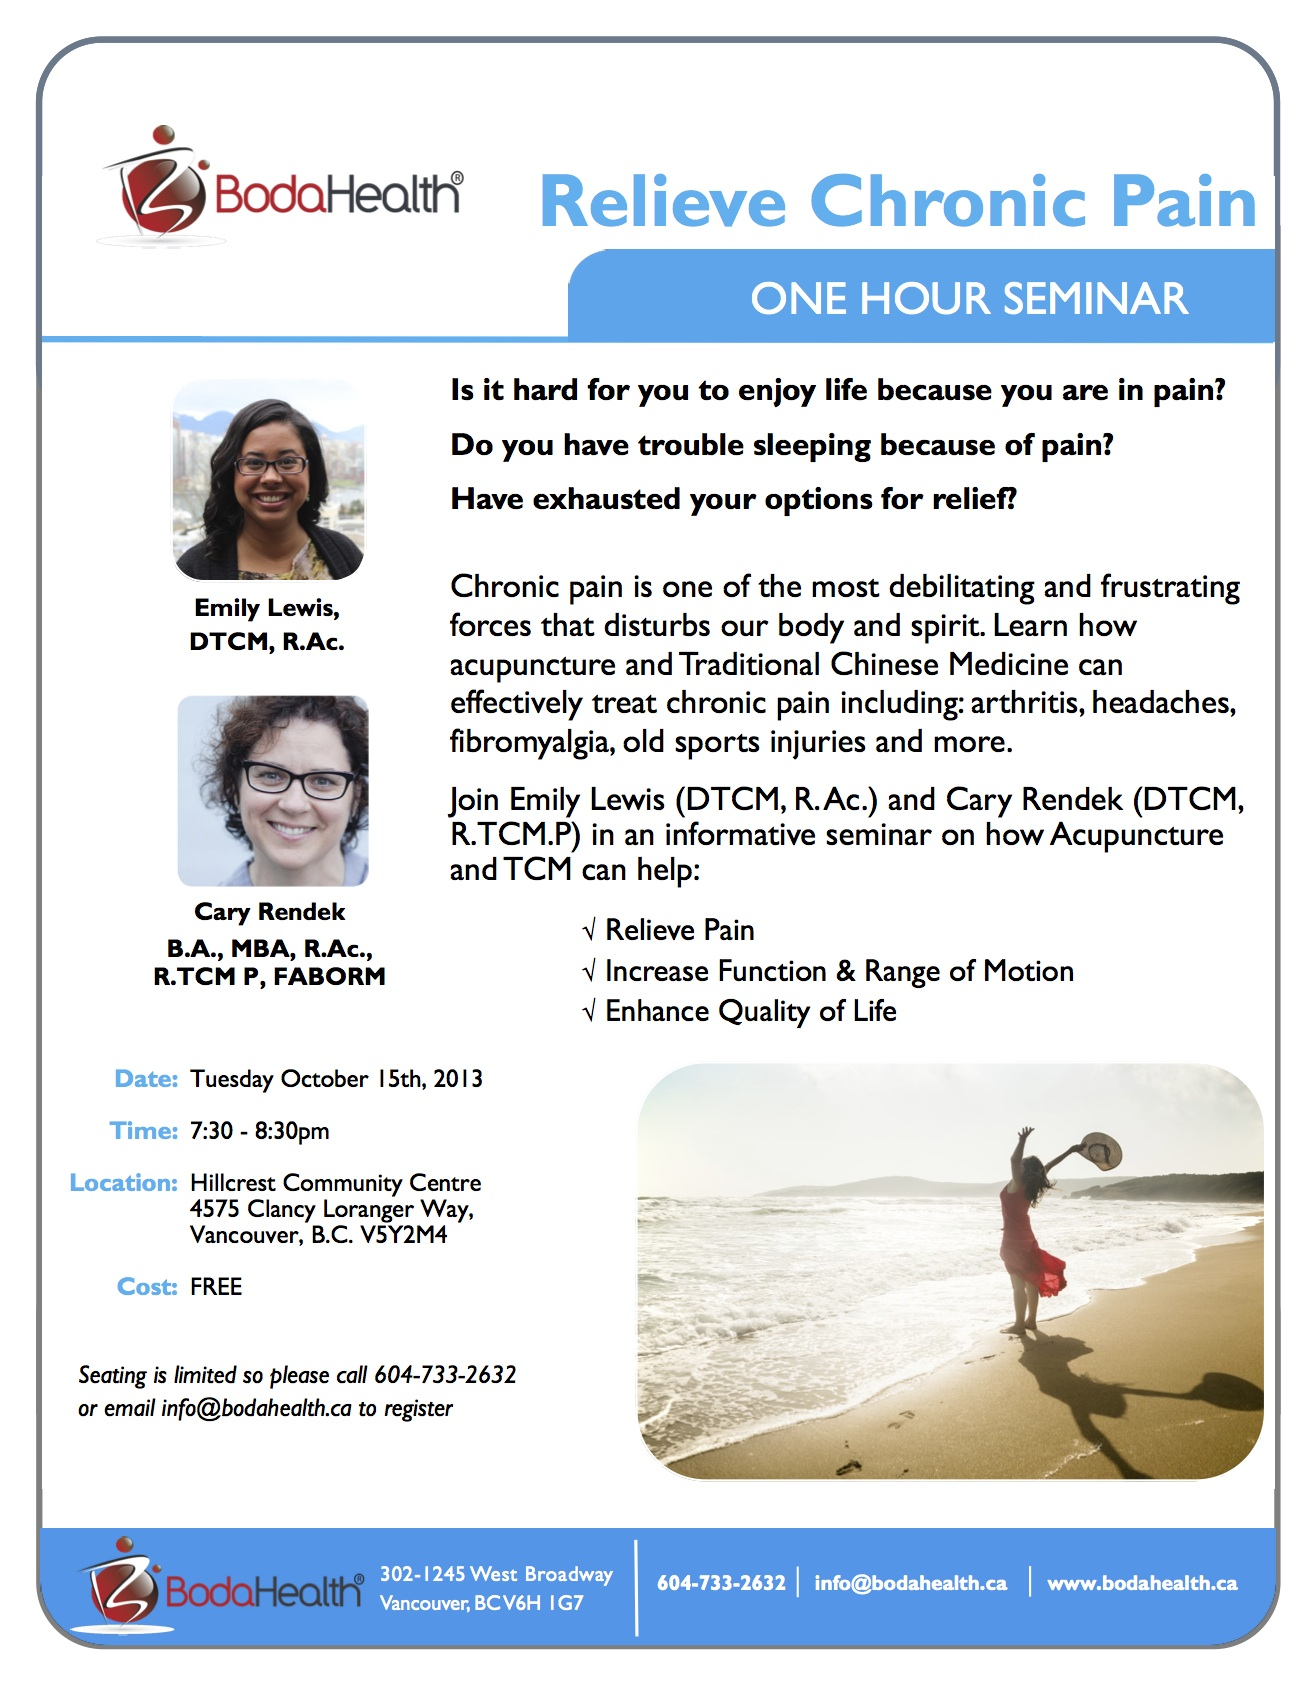 Relieve Chronic Pain - One Hour Seminar